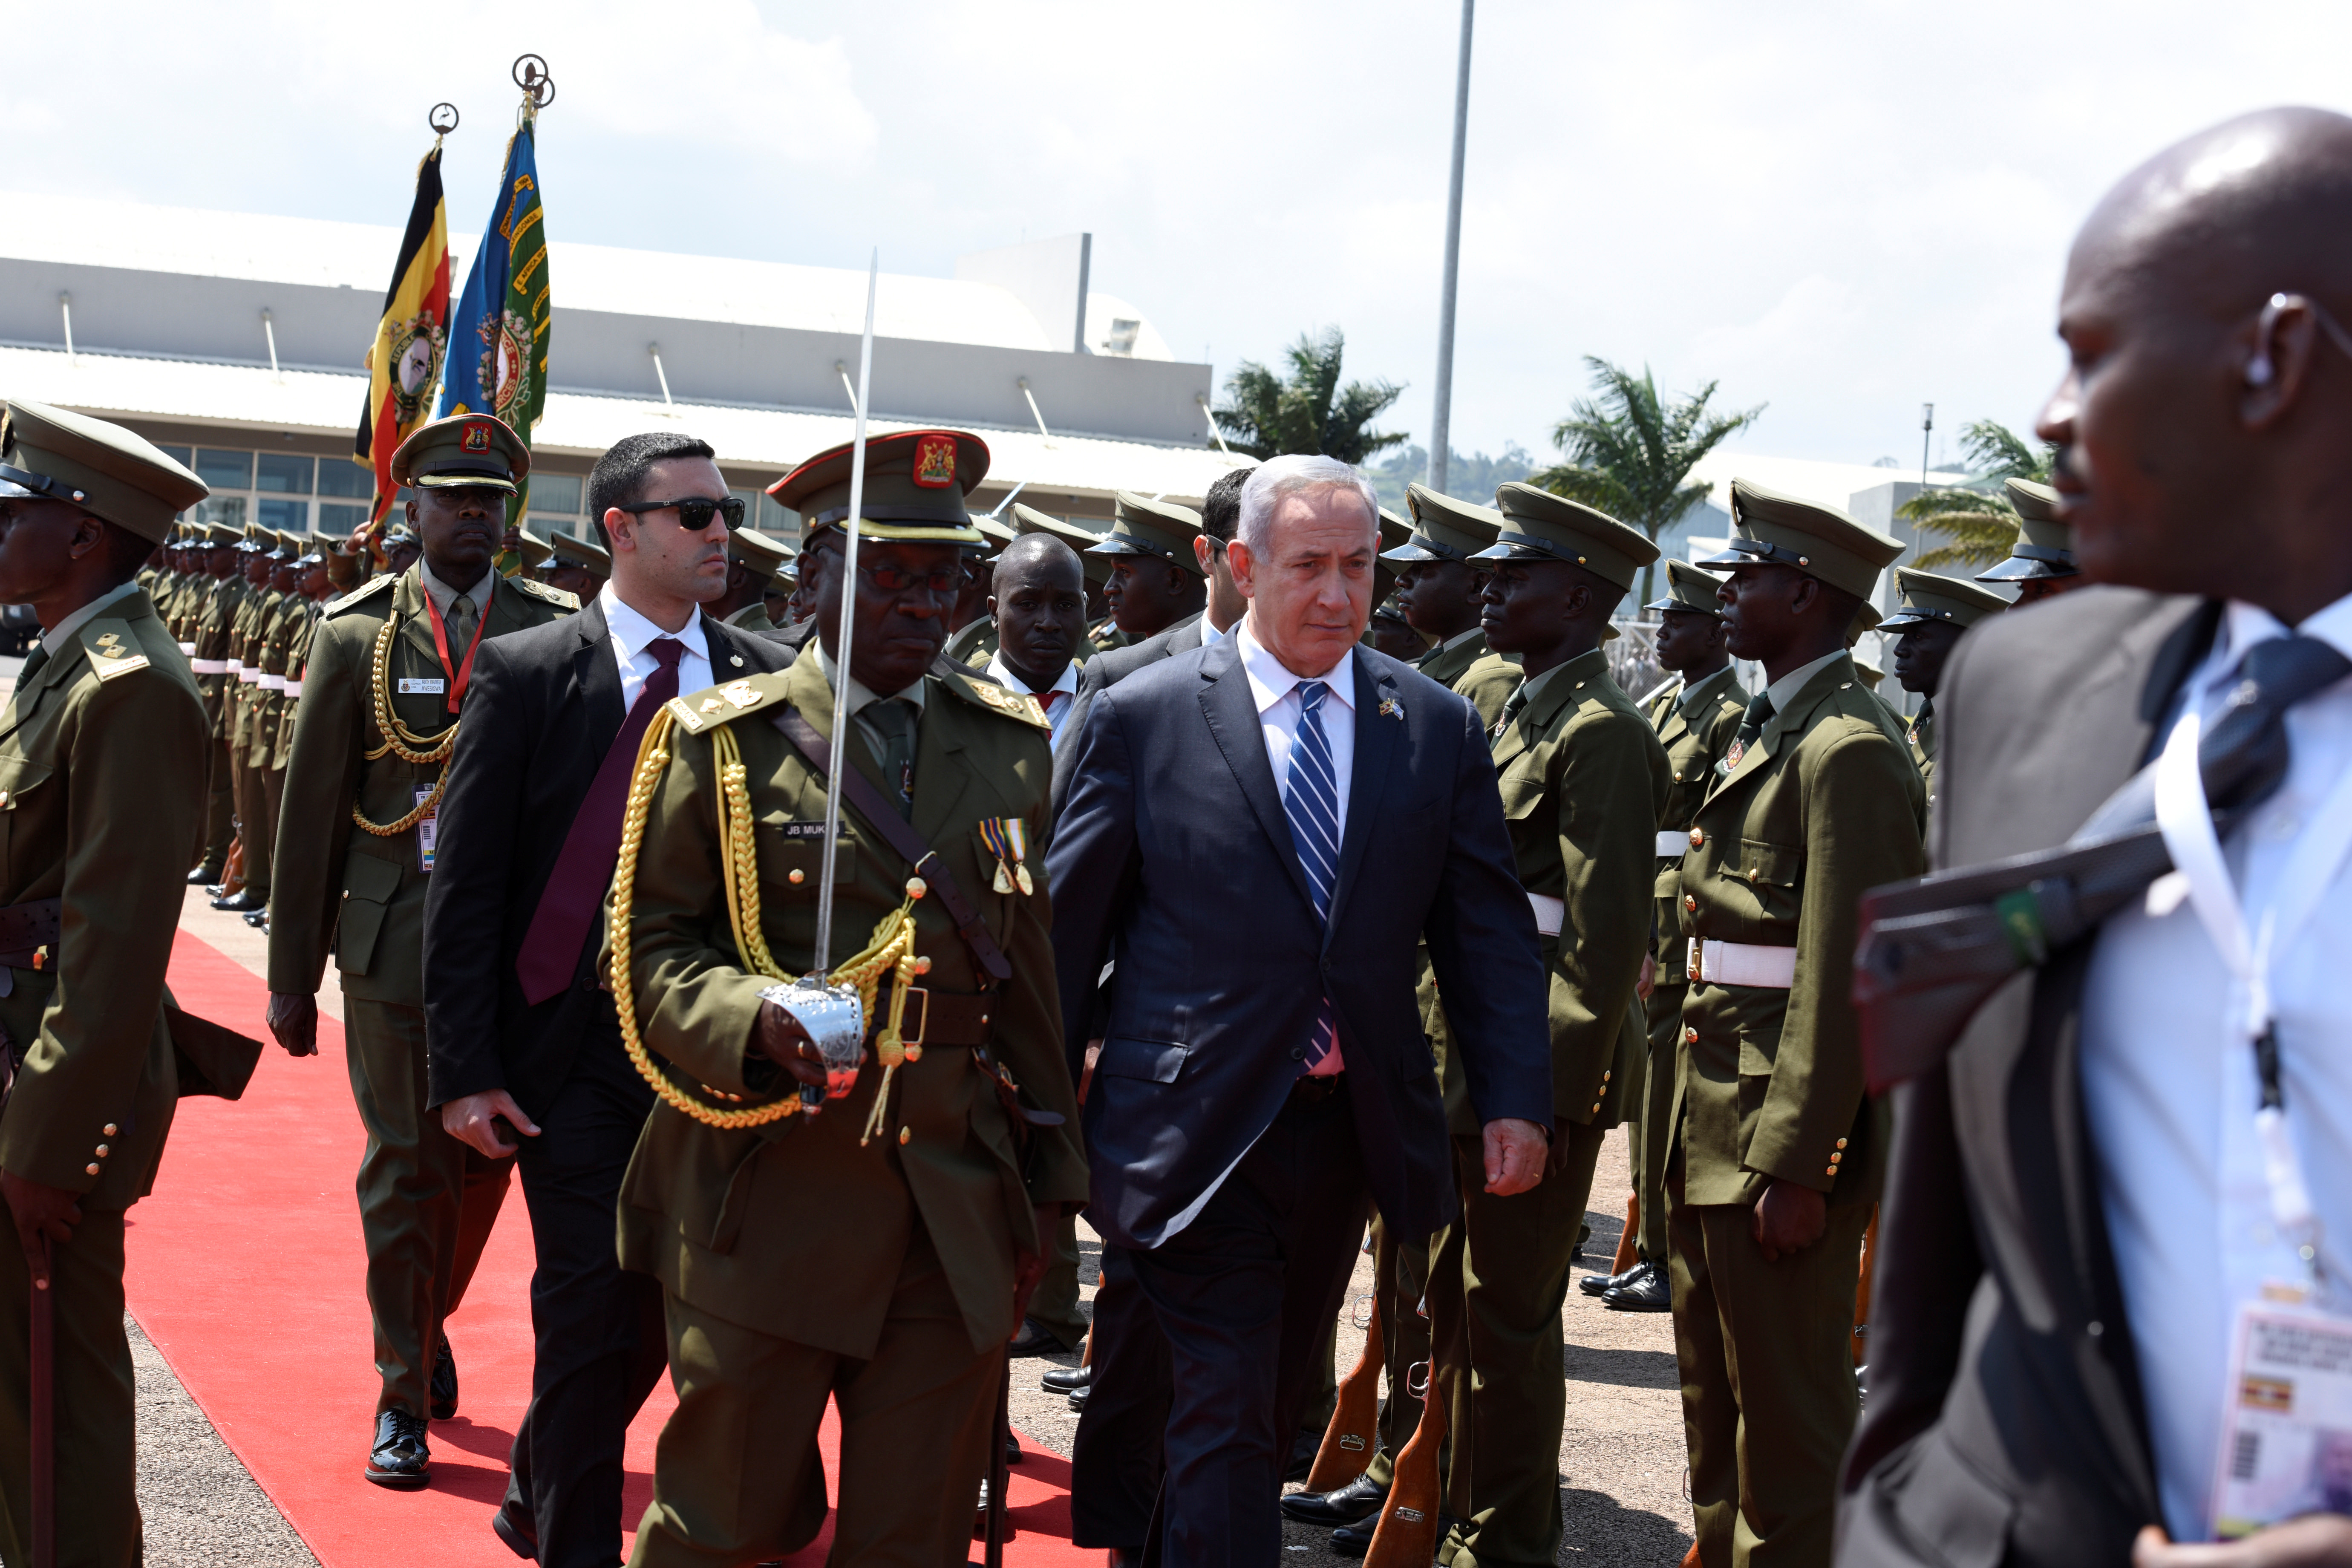 Israeli Prime Minister Benjamin Netanyahu (C) inspects a guard of honor after arriving at the Entebbe airport in Uganda, July 4, 2016.